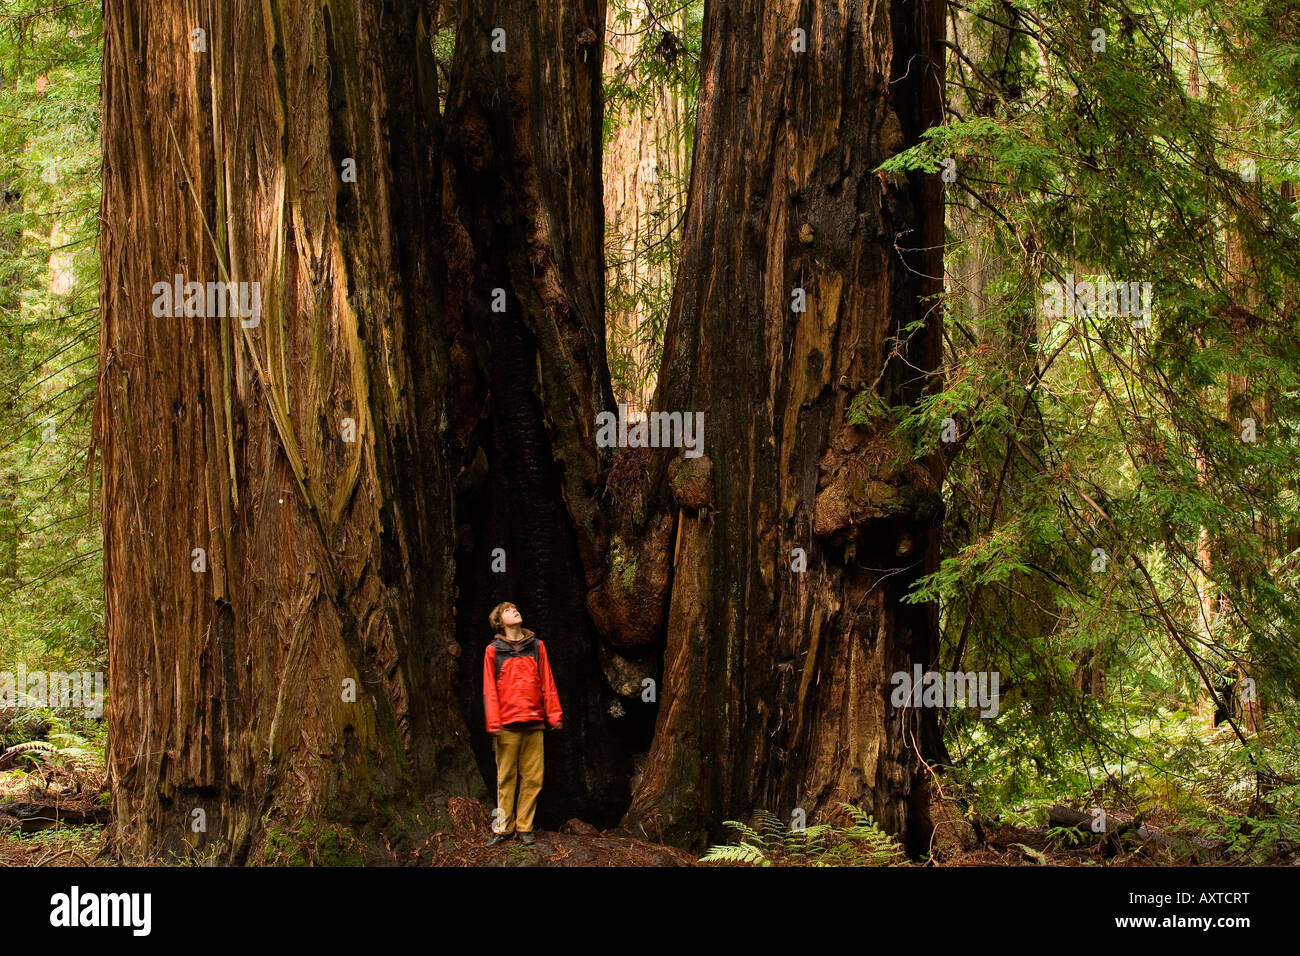 A boy stands amidst the towering redwoods of Montgomery Woods State Reserve Stock Photo